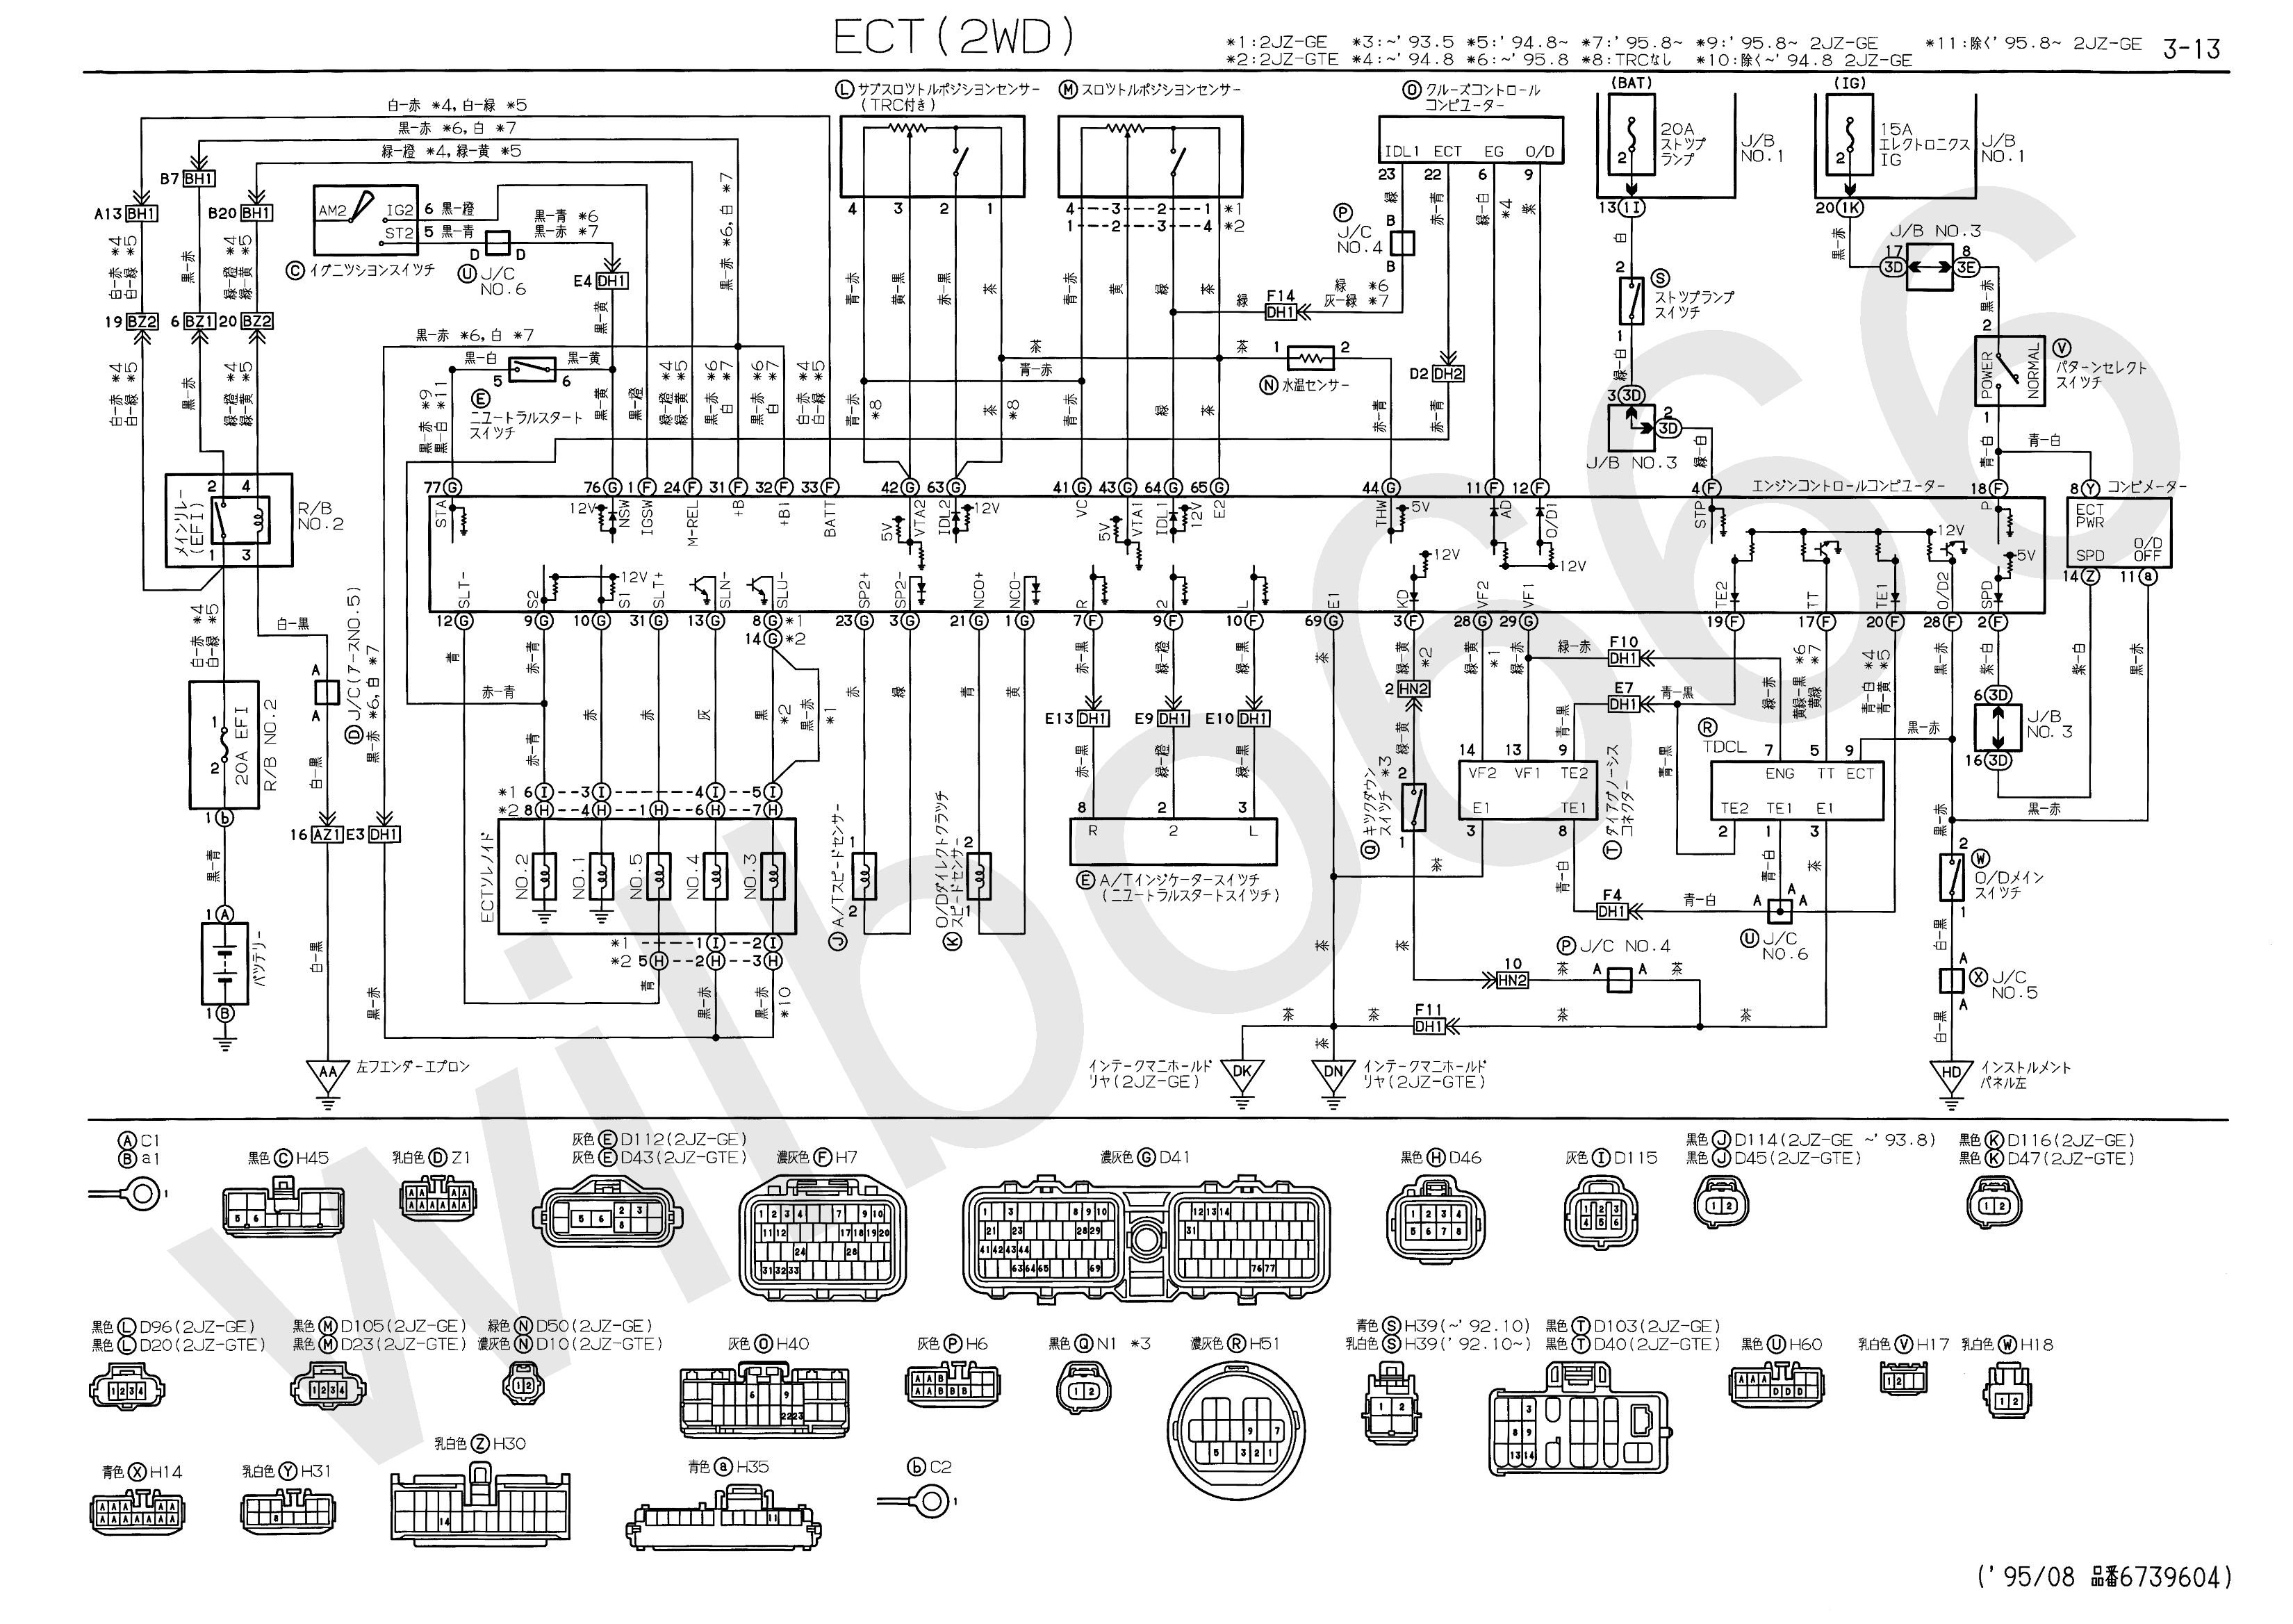 2003 vw radio wiring diagram vw radio wiring diagram 1983 wilbo666 2jz ge jza80 supra engine wiring #6